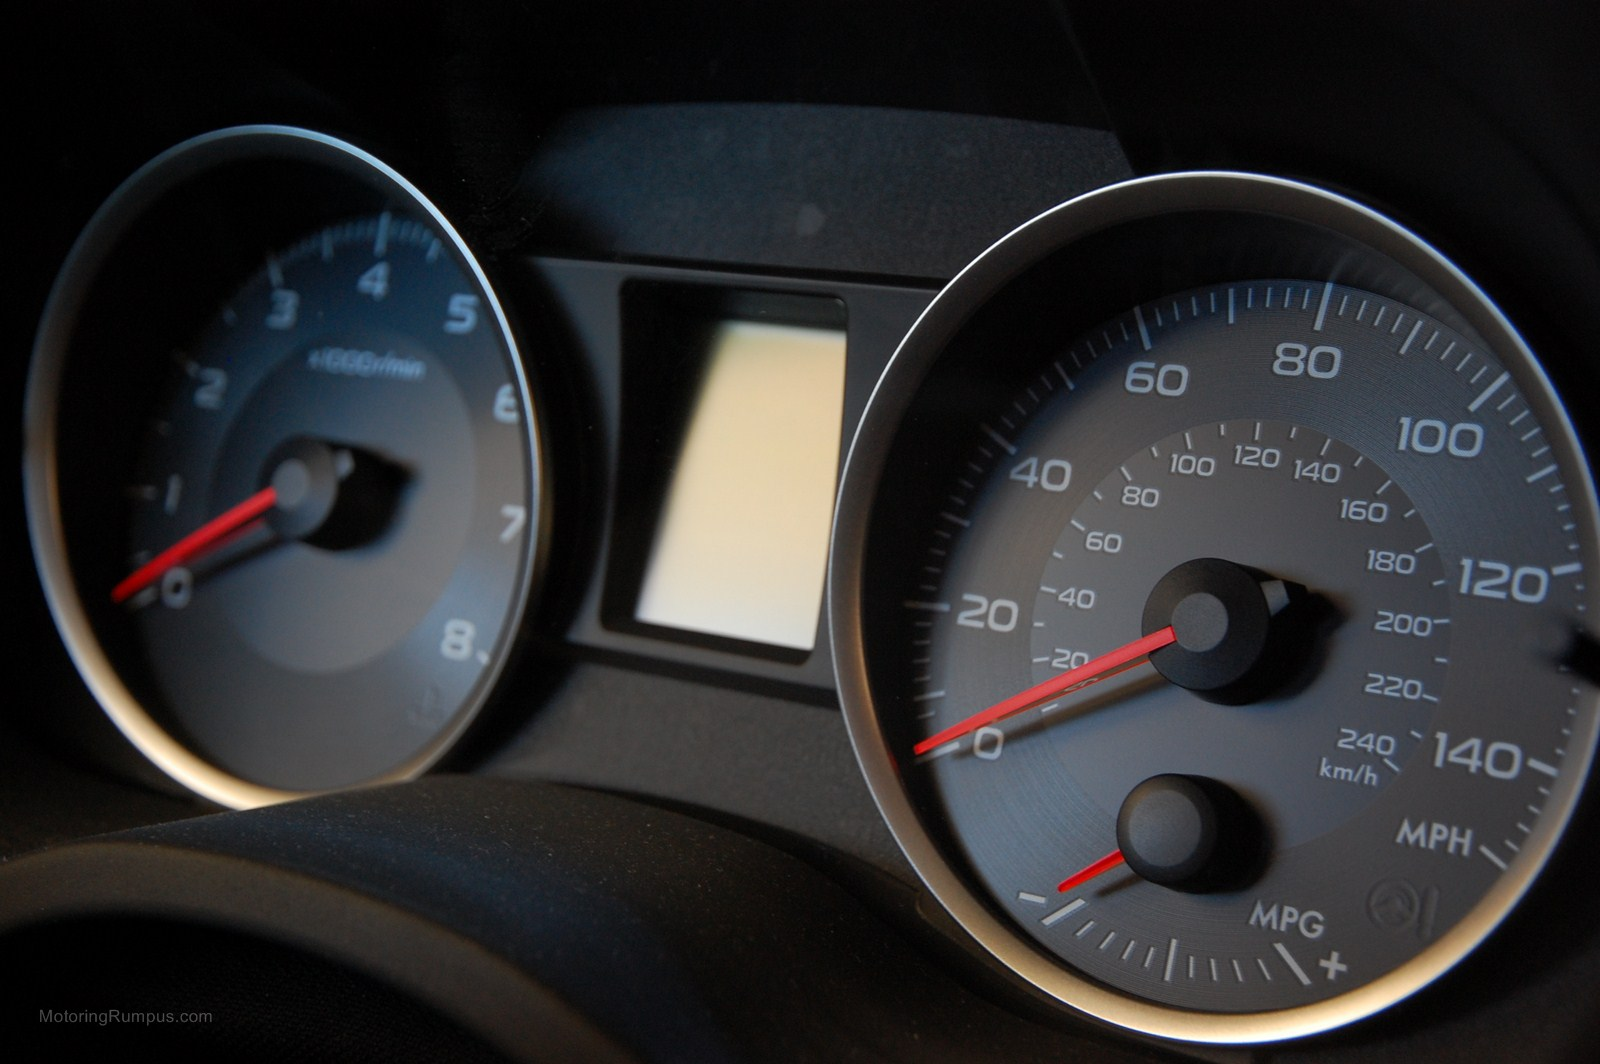 2014 Mustang Speedometer Calibration – Wonderful Image Gallery